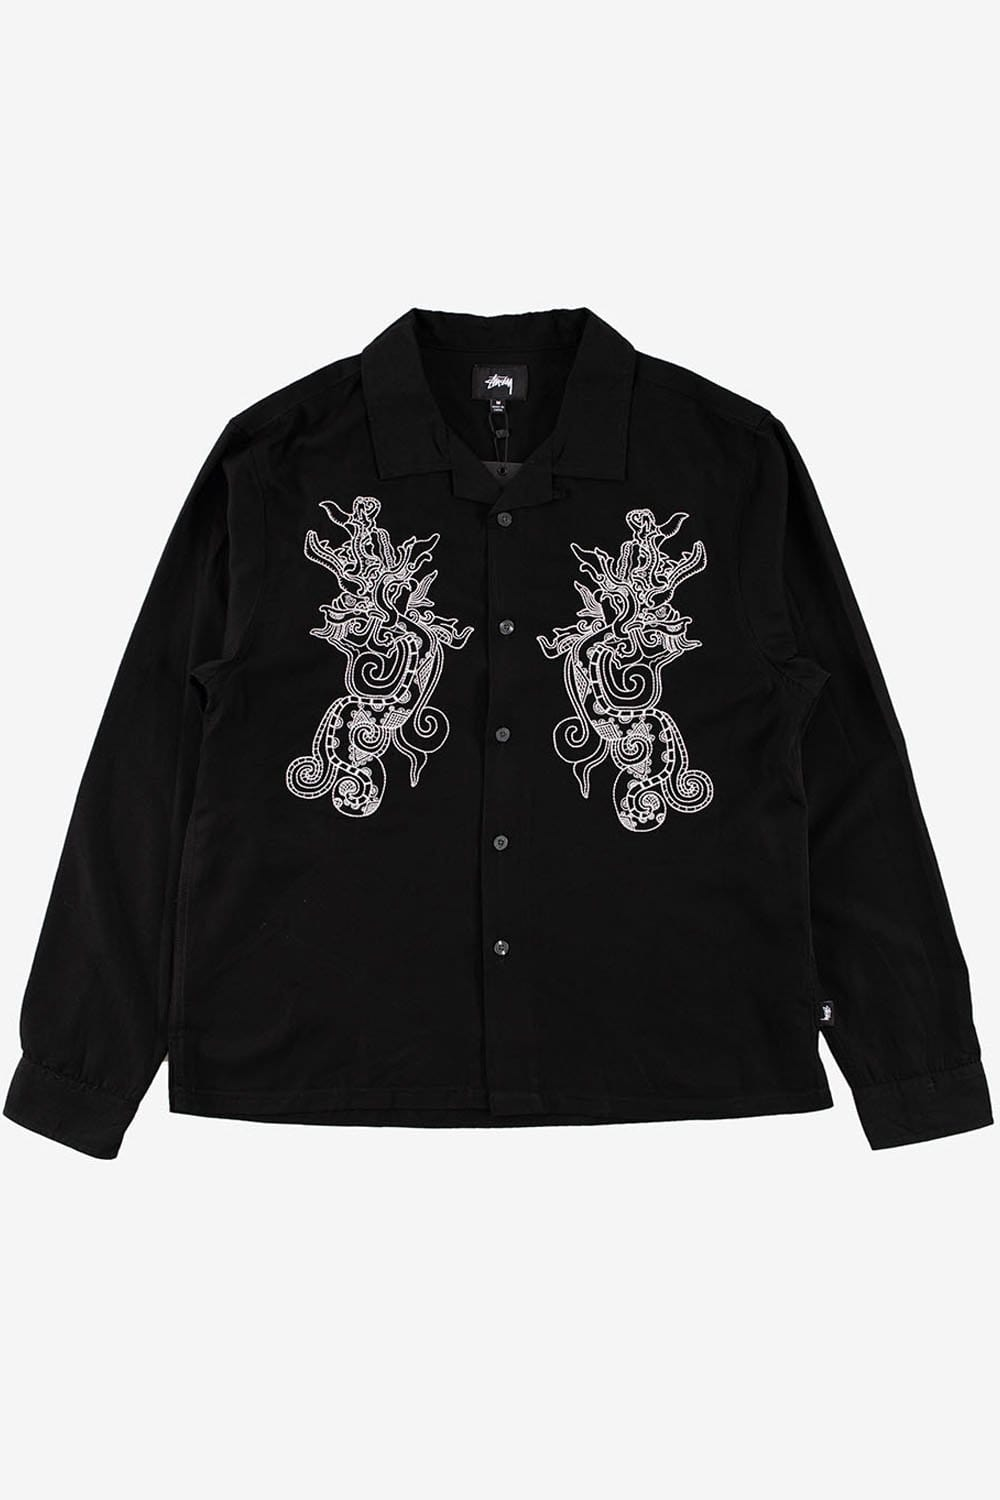 Stussy Apparel Embroidered Dragon Long Sleeve Shirt